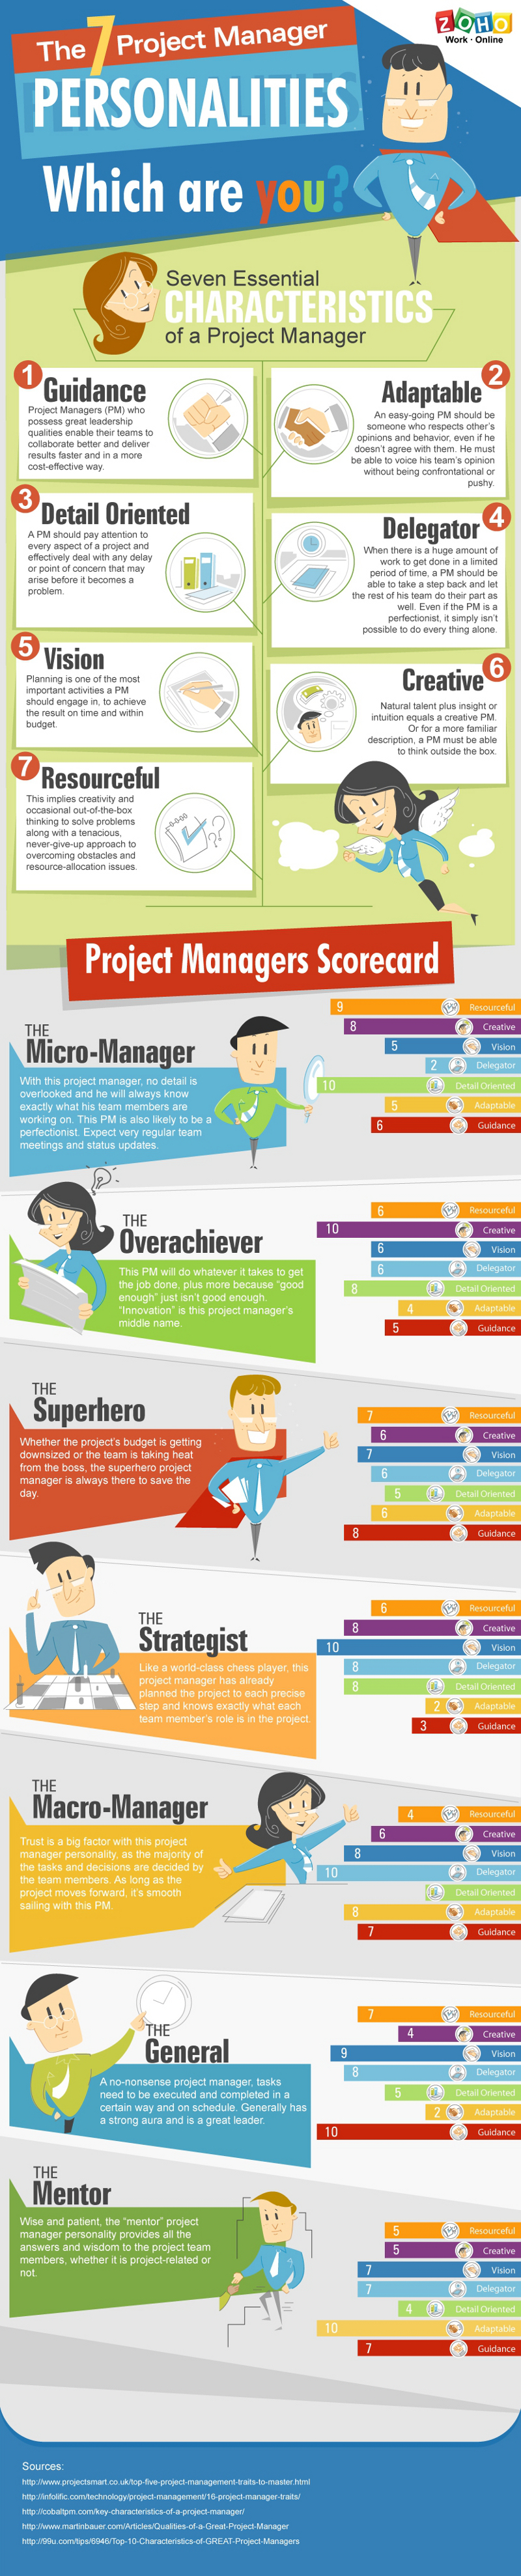 Different Types of Project Manager Personalities